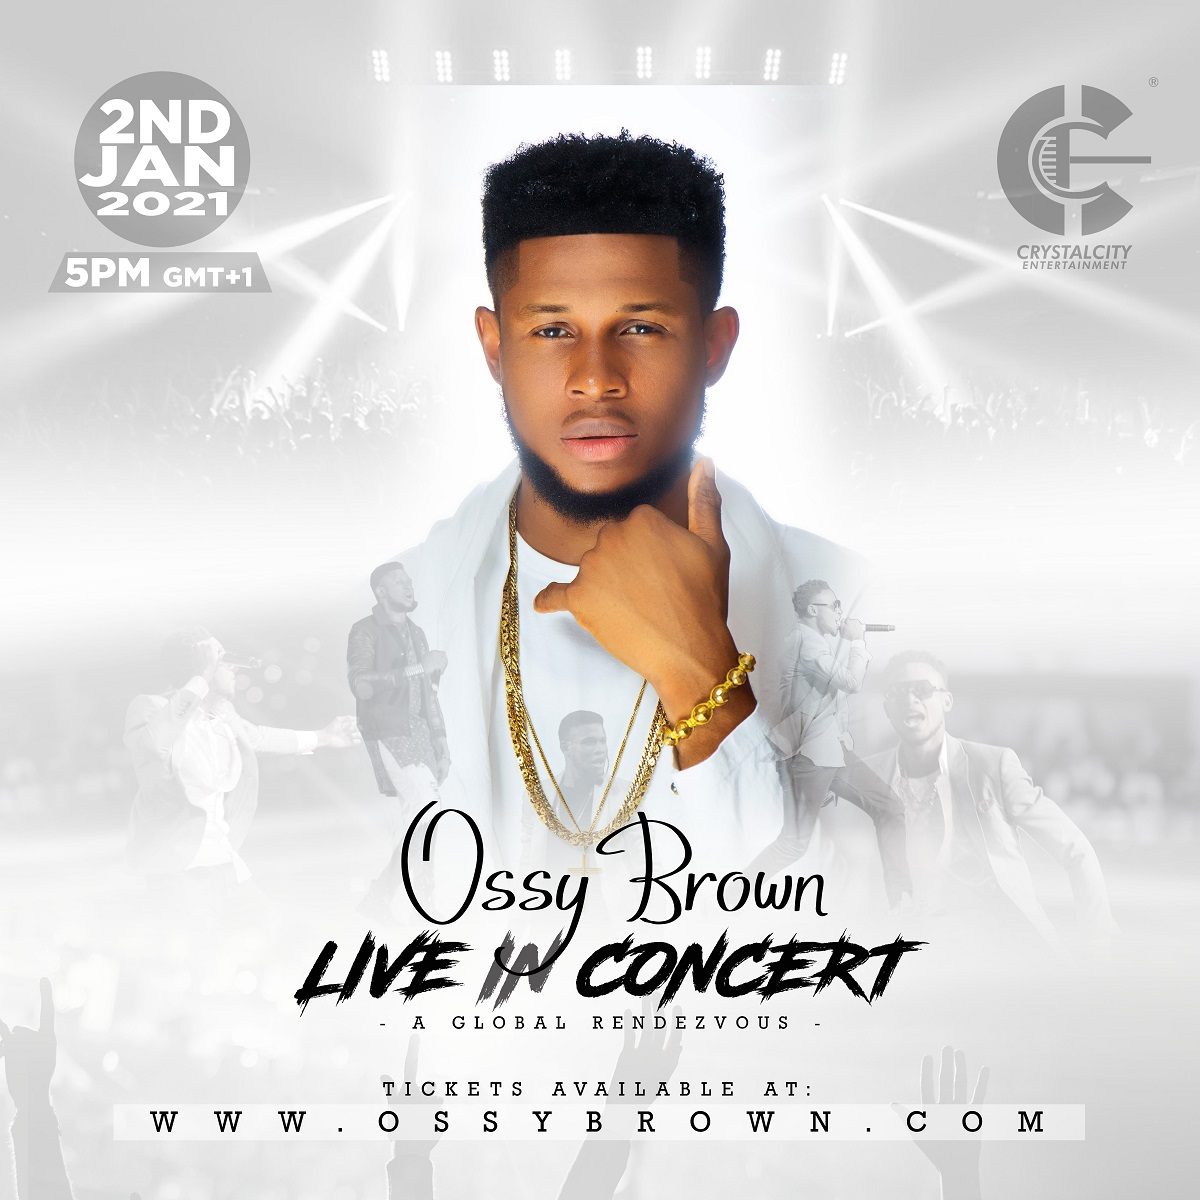 Ossy Brown Set to Hold Live Concert On Jan 2, 2021